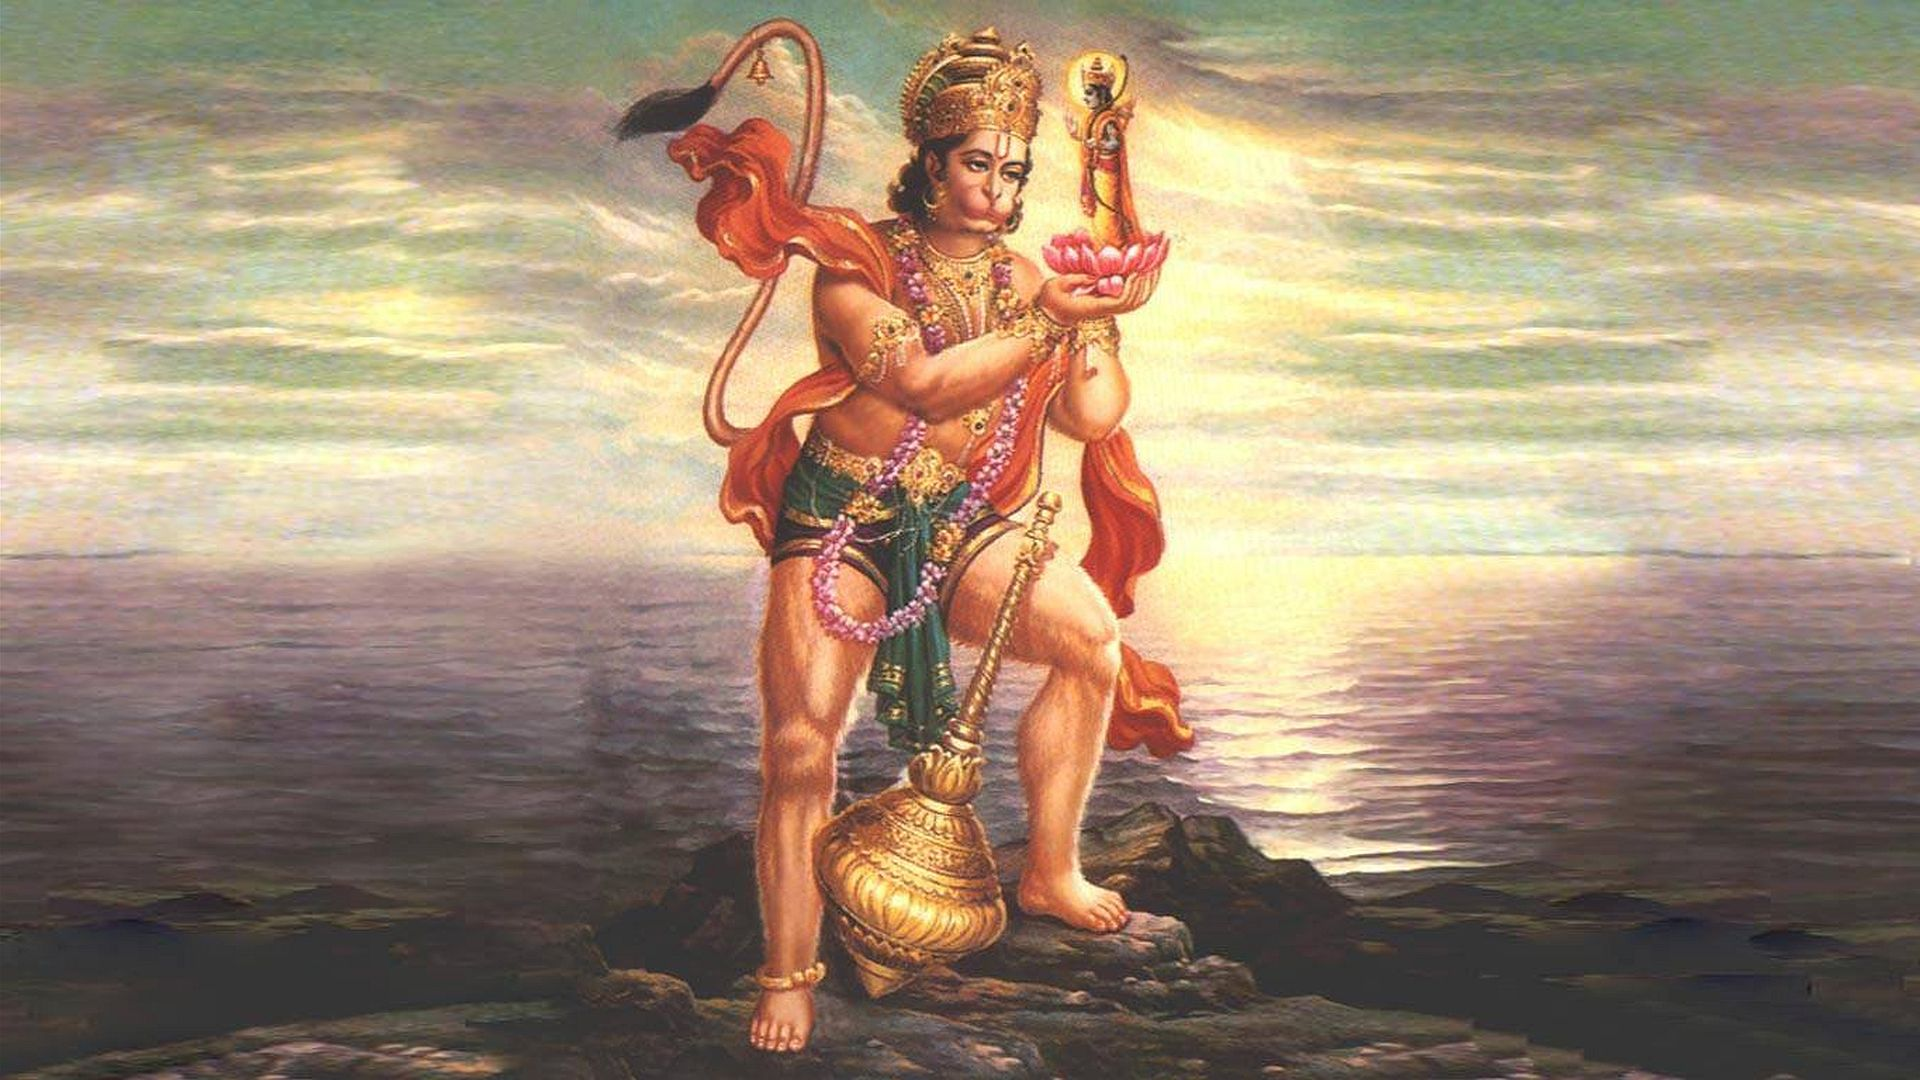 Lord Hanuman Wallpaper Hindu Gods And Goddesses